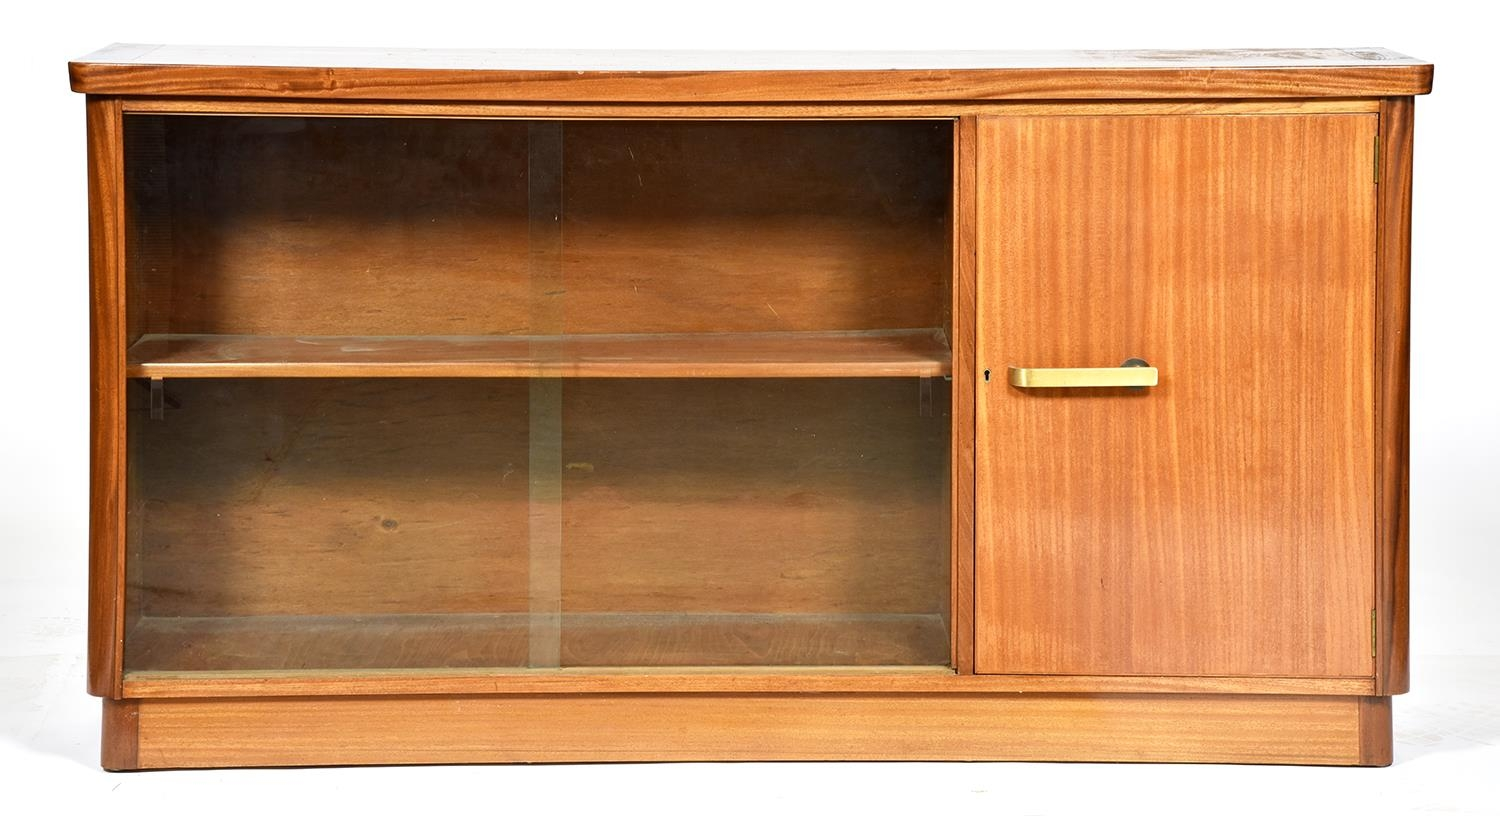 A mid century light wood bookcase, c1960,of solid and laminate construction, adjustable shelves,